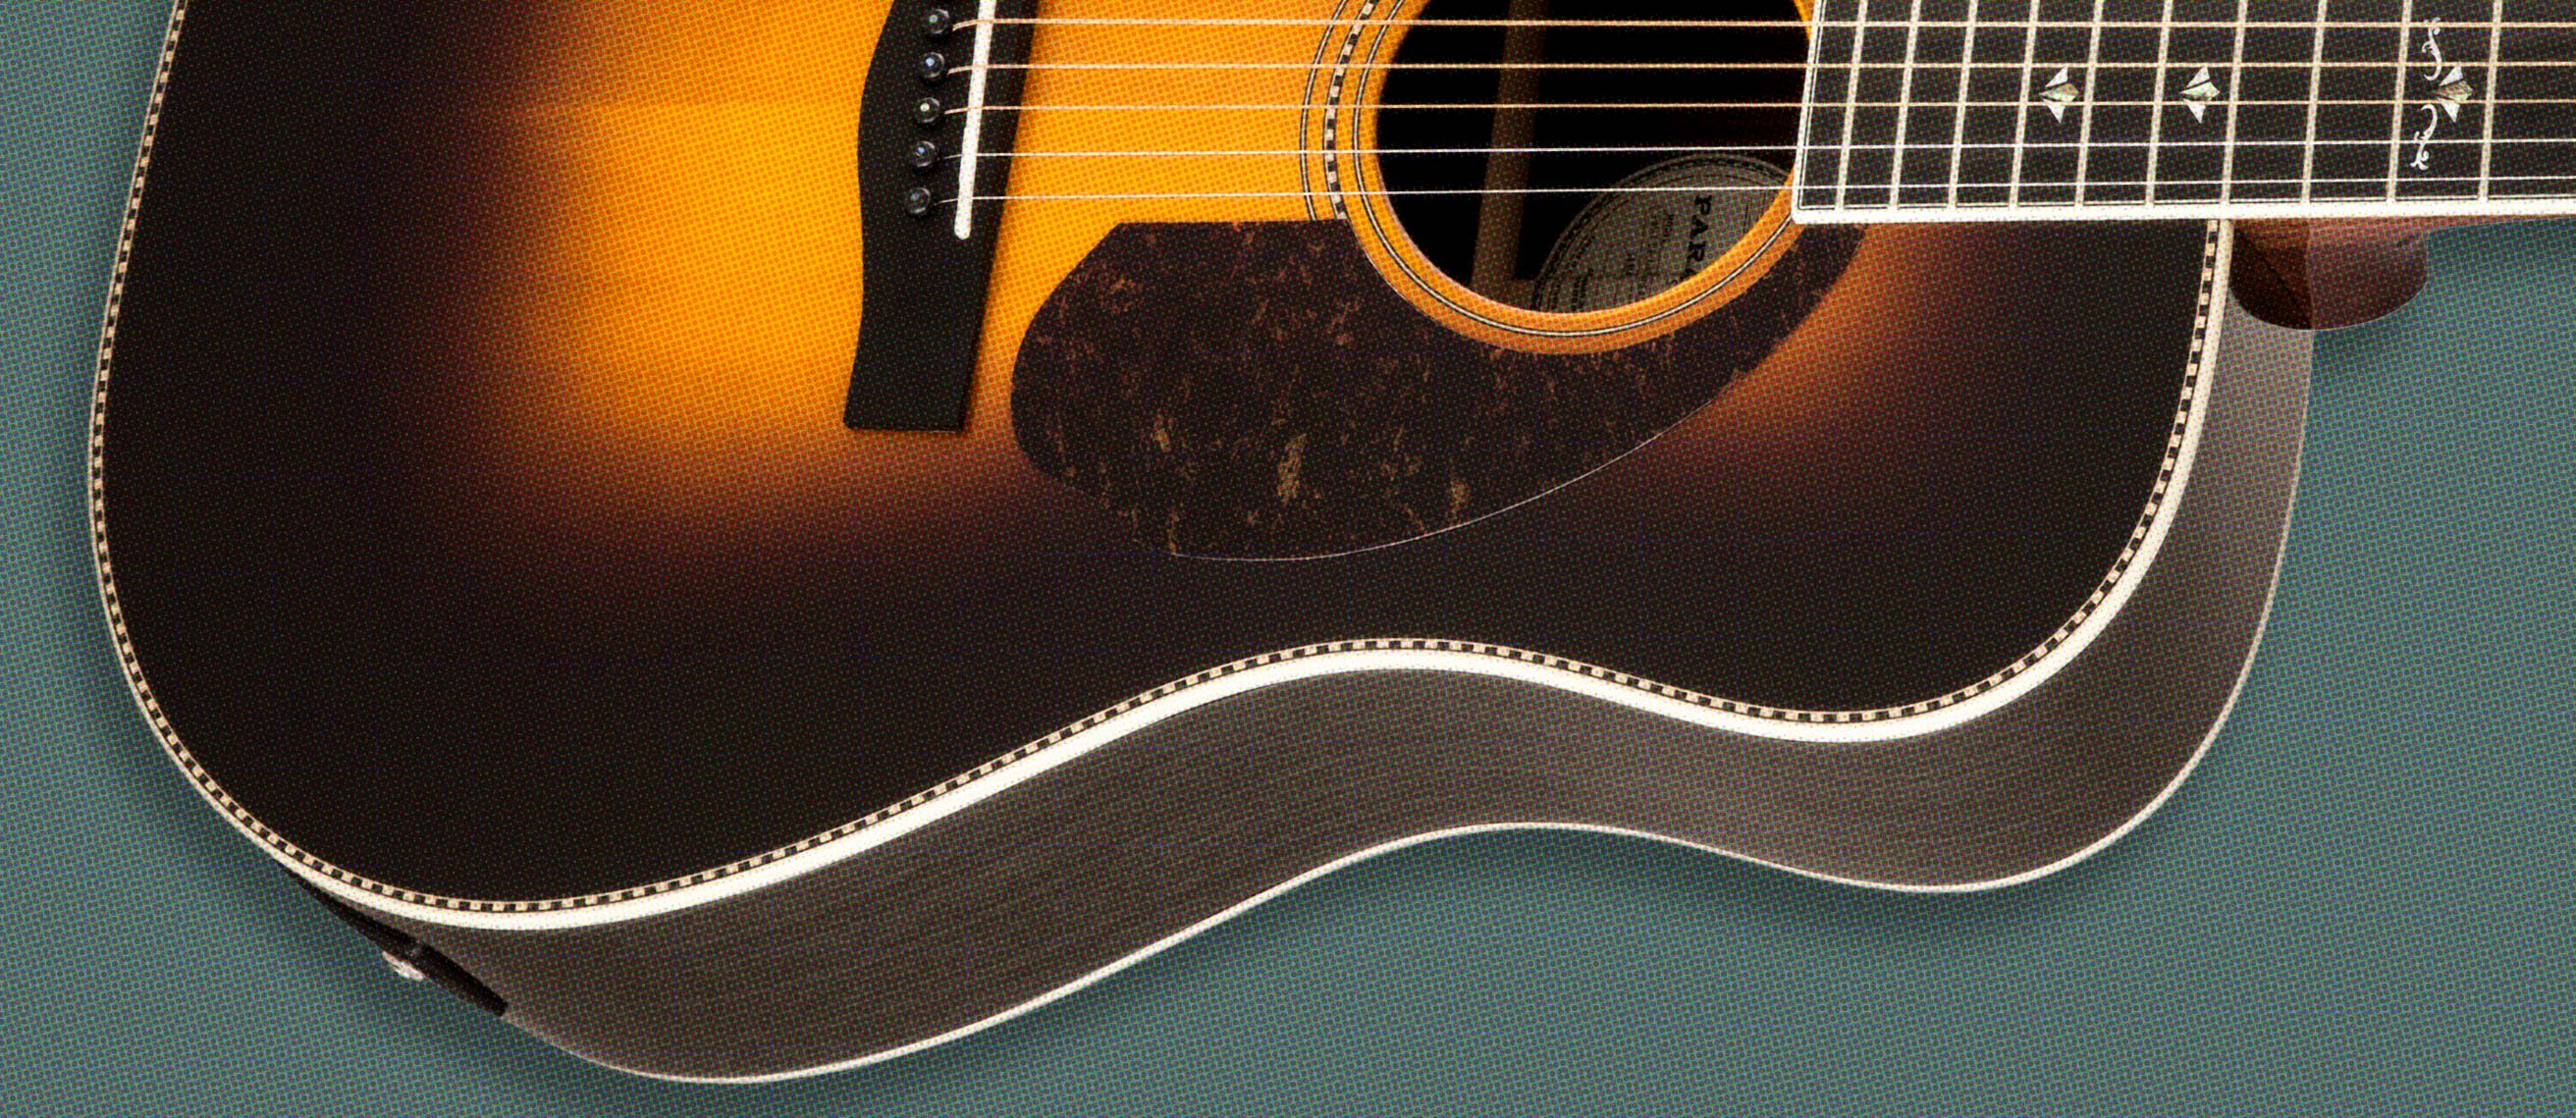 Common Style of Acoustic Guitar